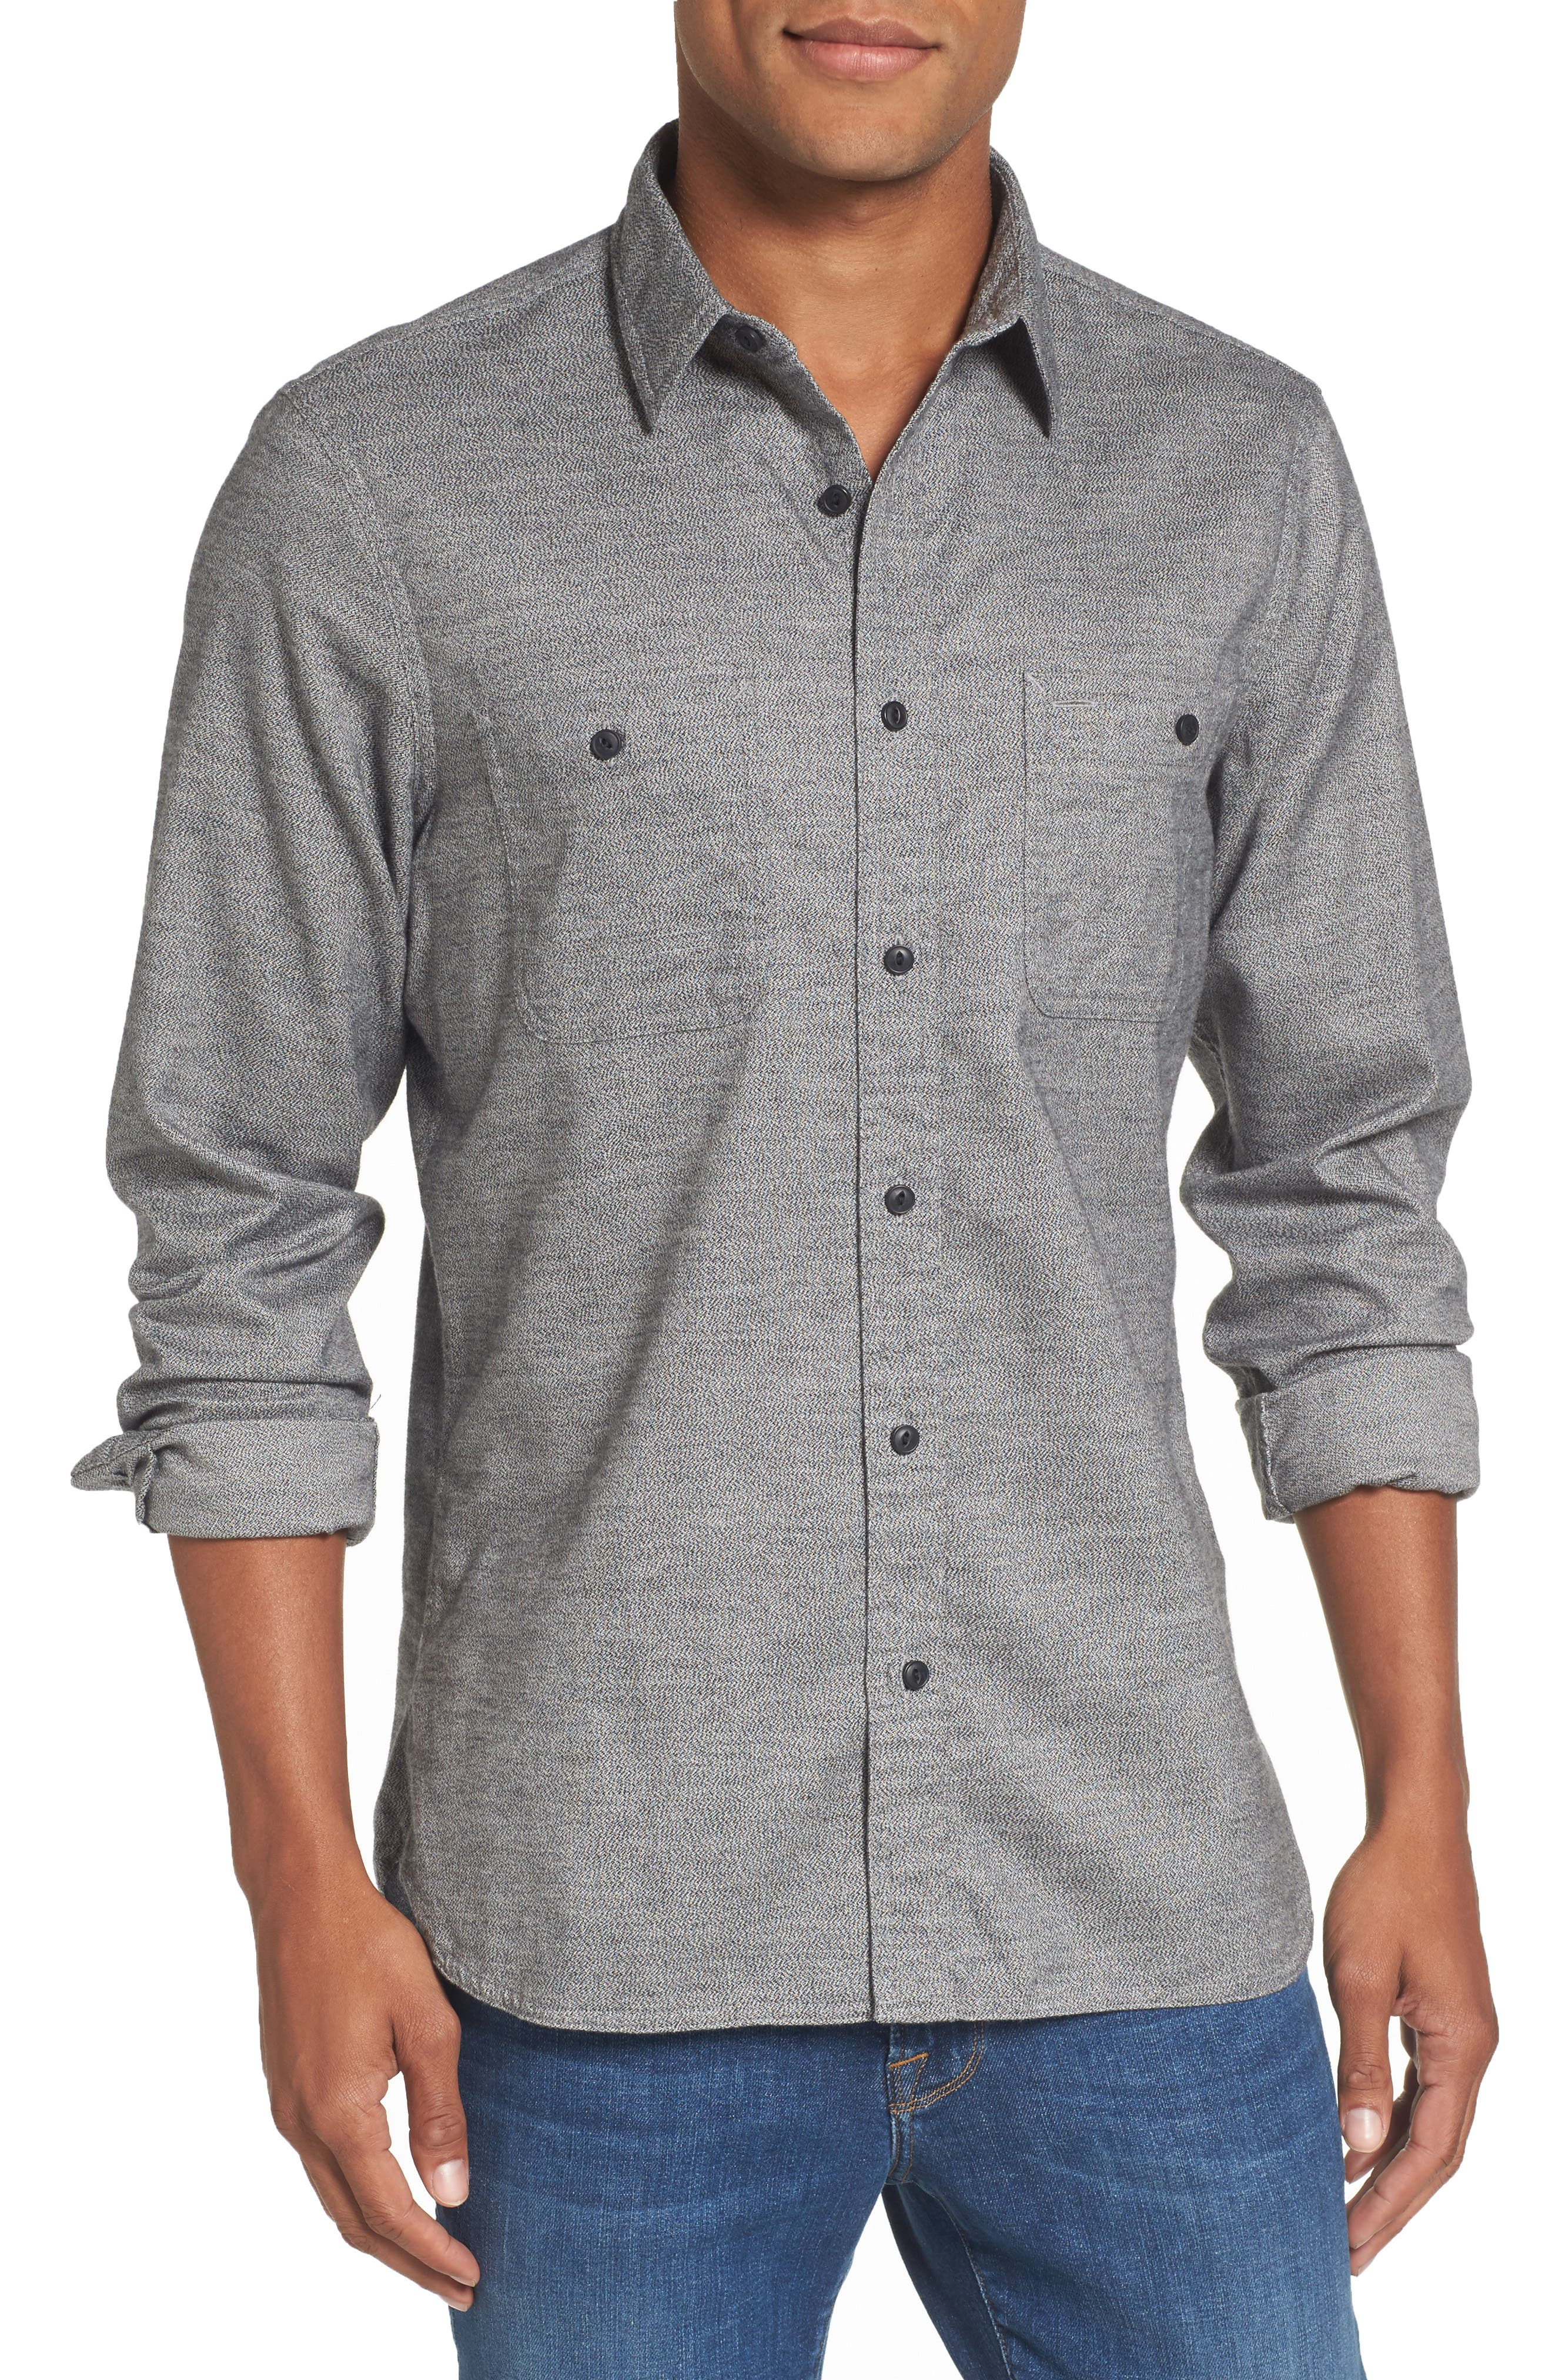 Nordstrom Men's Shop Slim Fit Jaspé Sport Shirt (Regular & Tall)